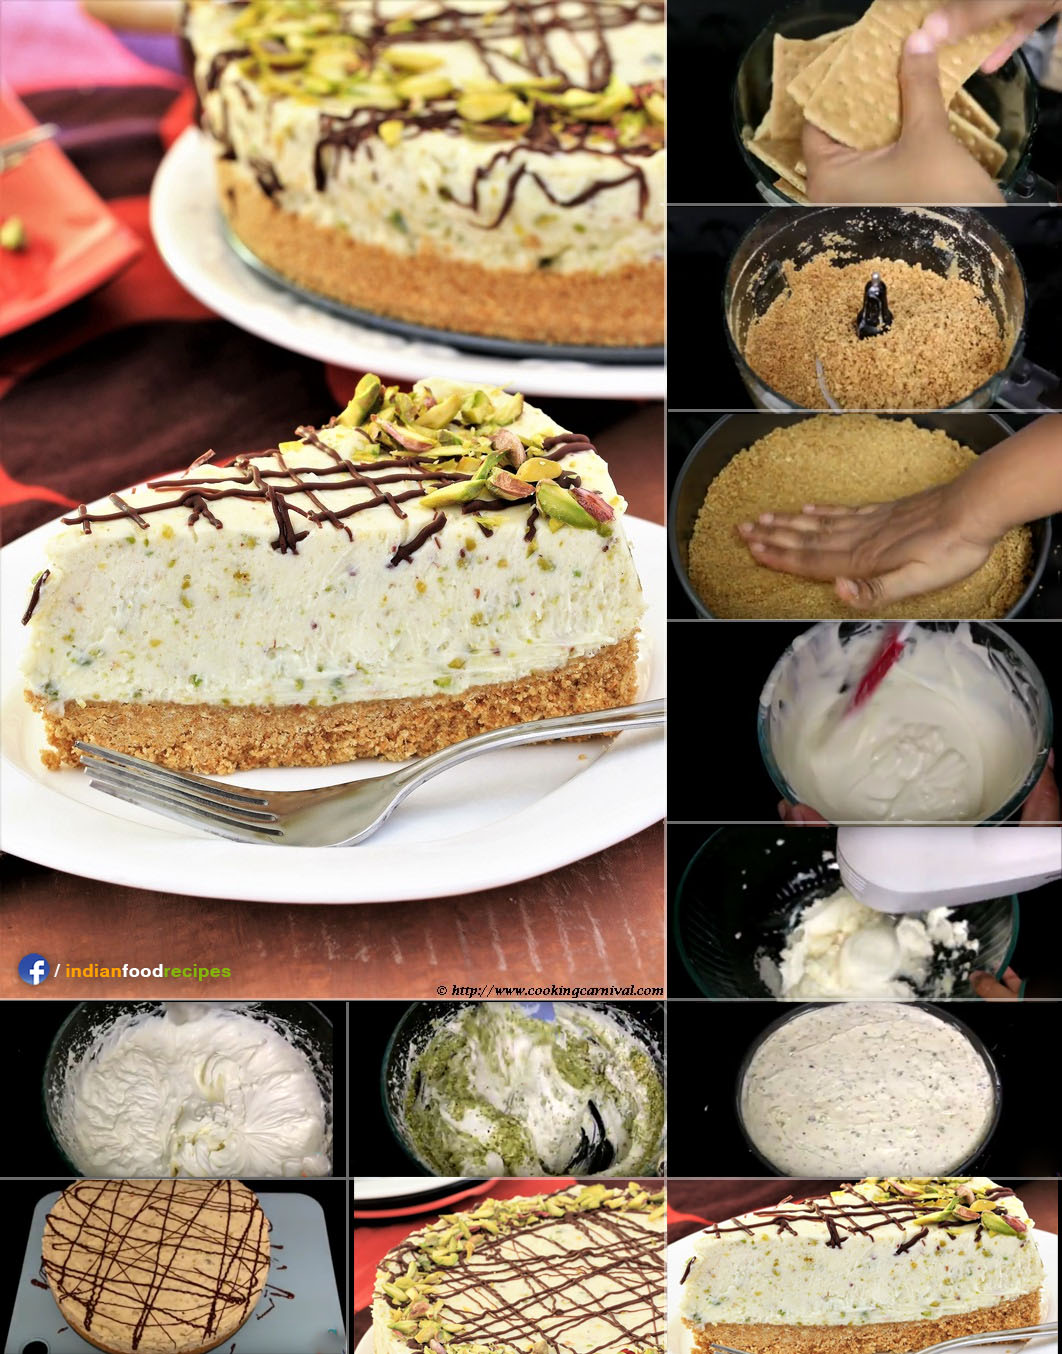 White chocolate pistachio cheesecake recipe step by step